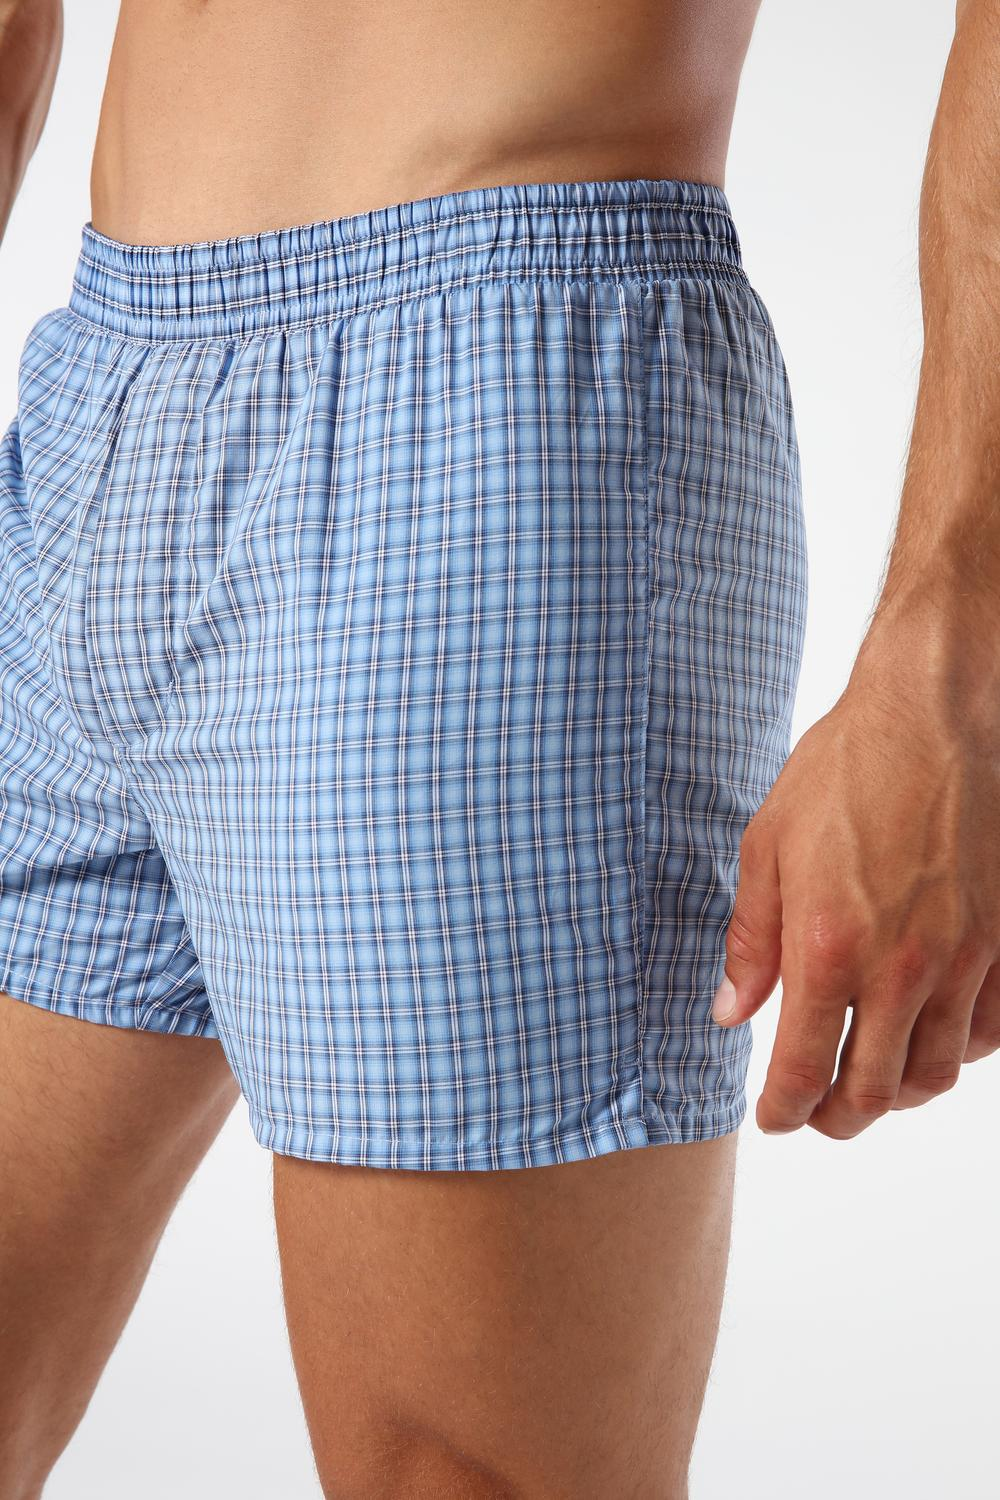 Print Detailed Boxers